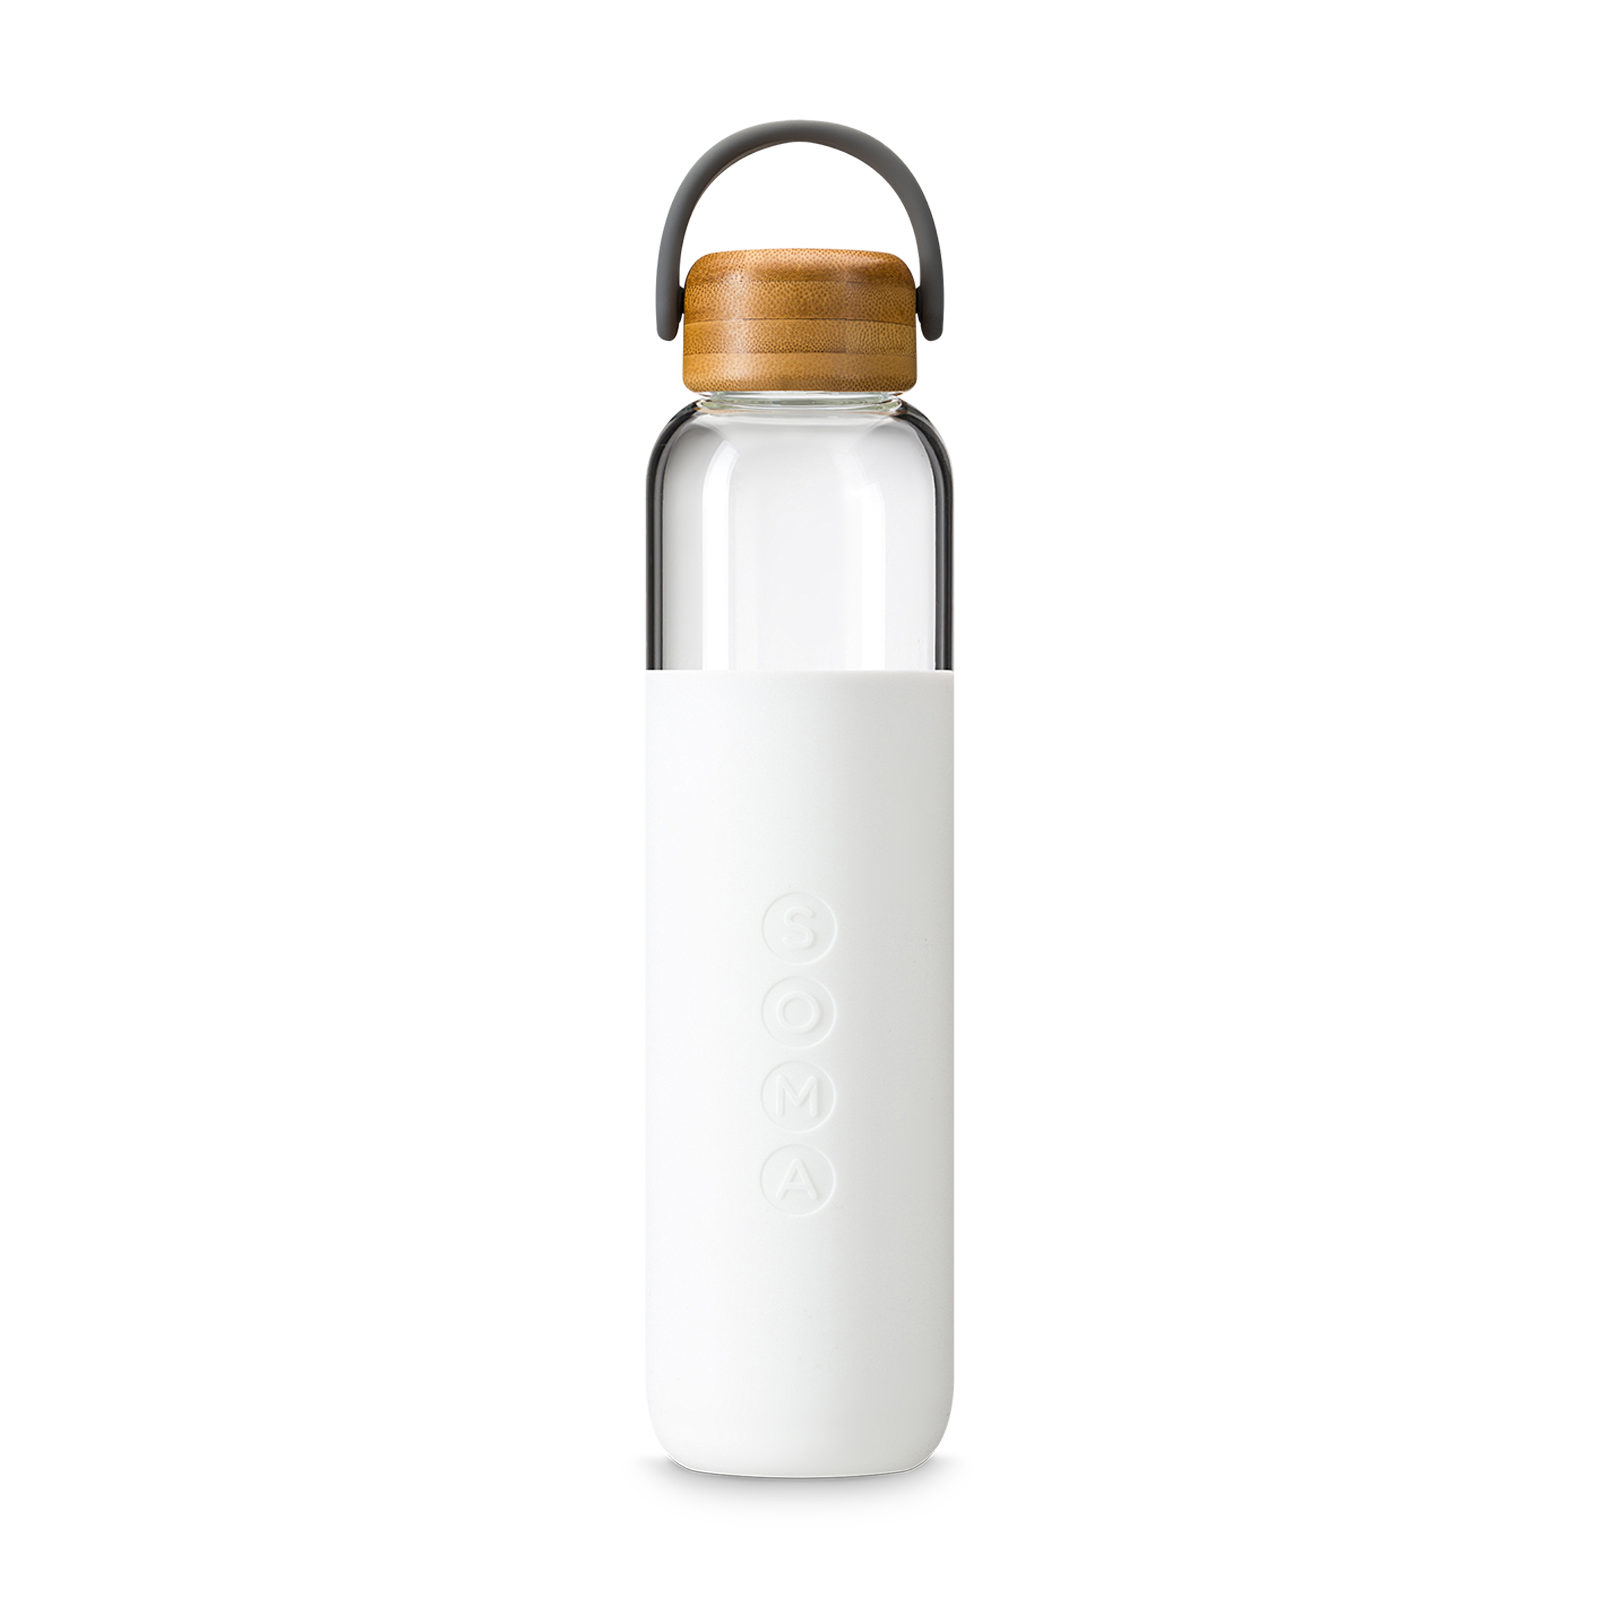 Water bottle product photography